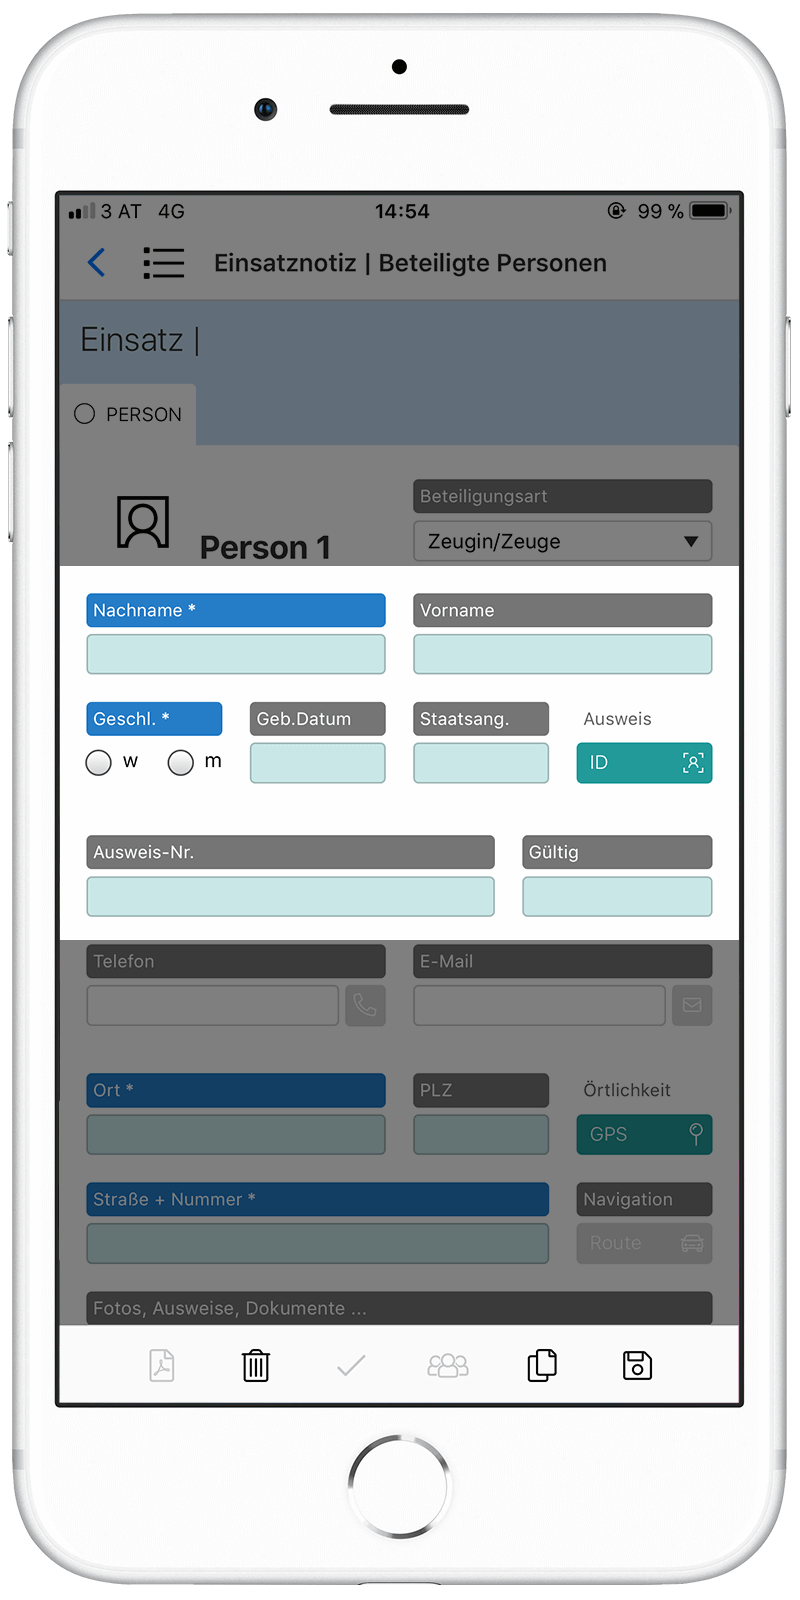 Integration of Anyline for mobile text recognition in